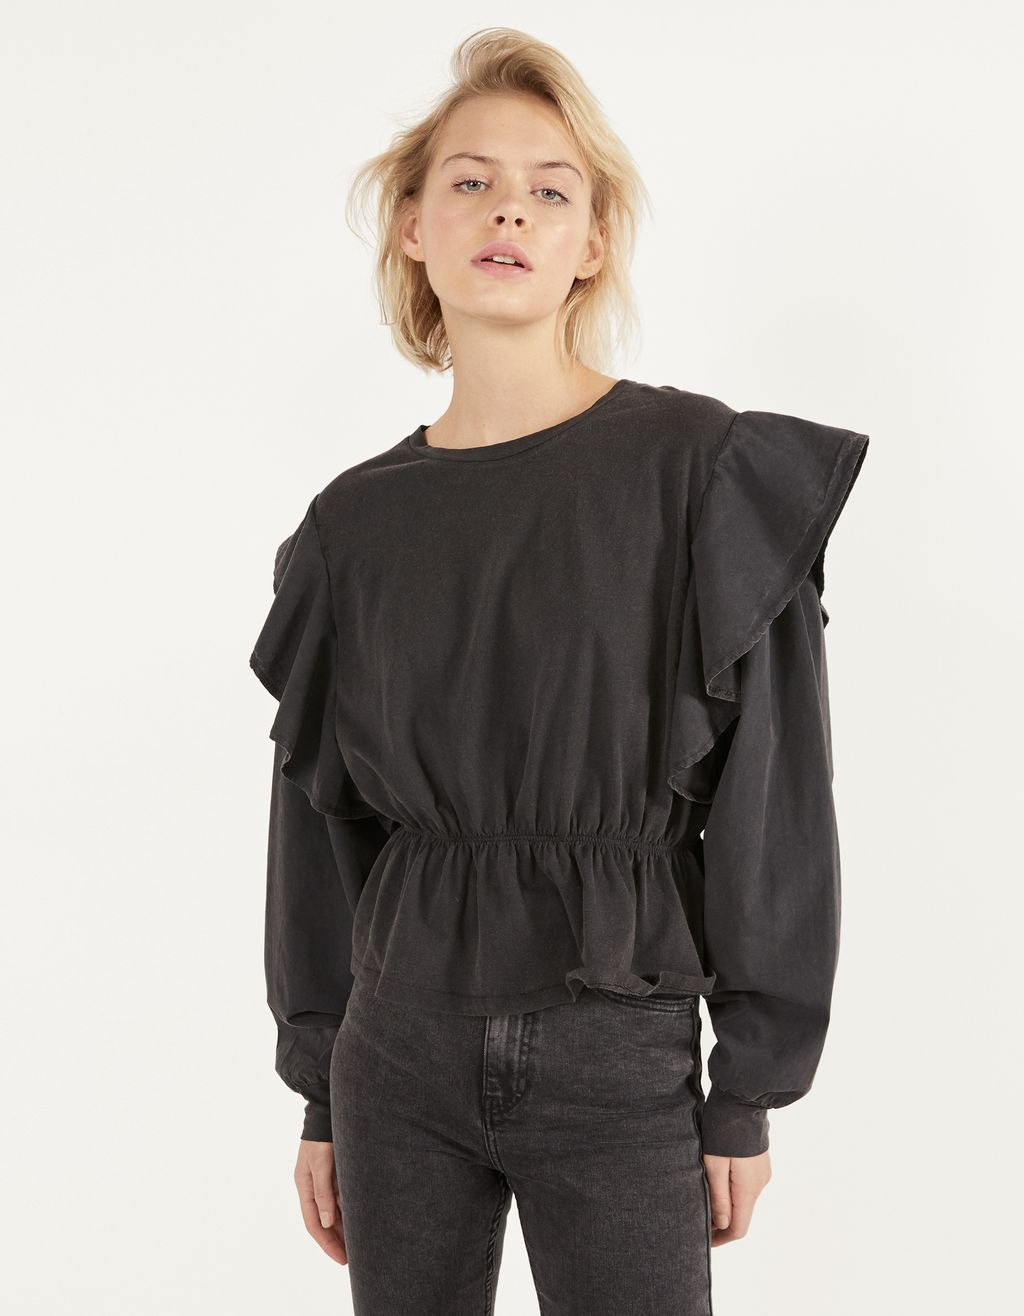 Top with ruffles and ruching